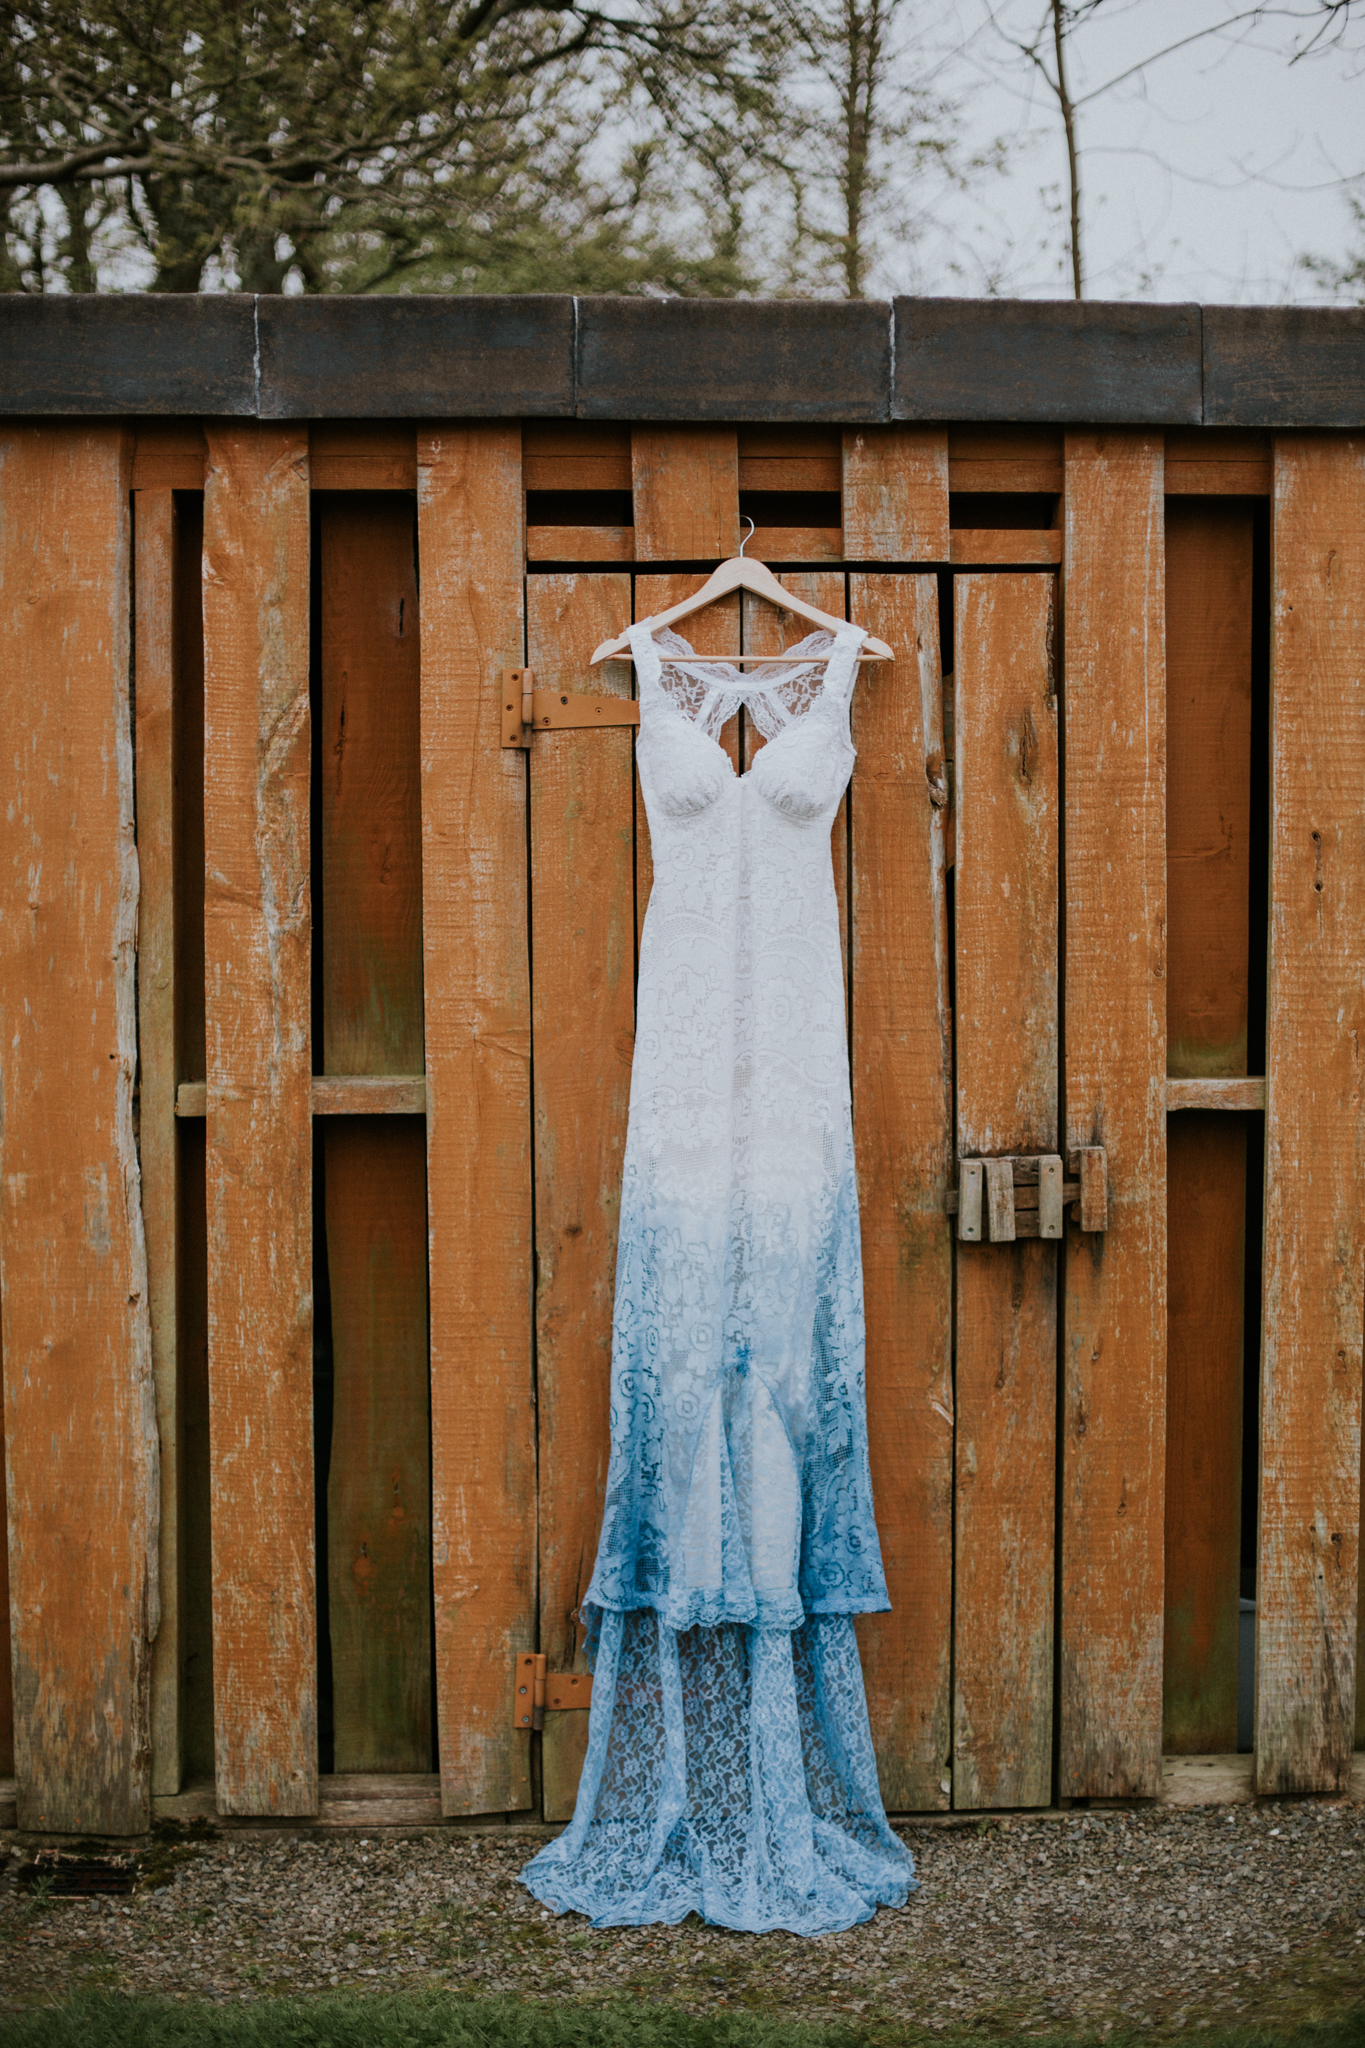 The alternative wedding dress hanged on at the Inish Beg Estate in Ireland